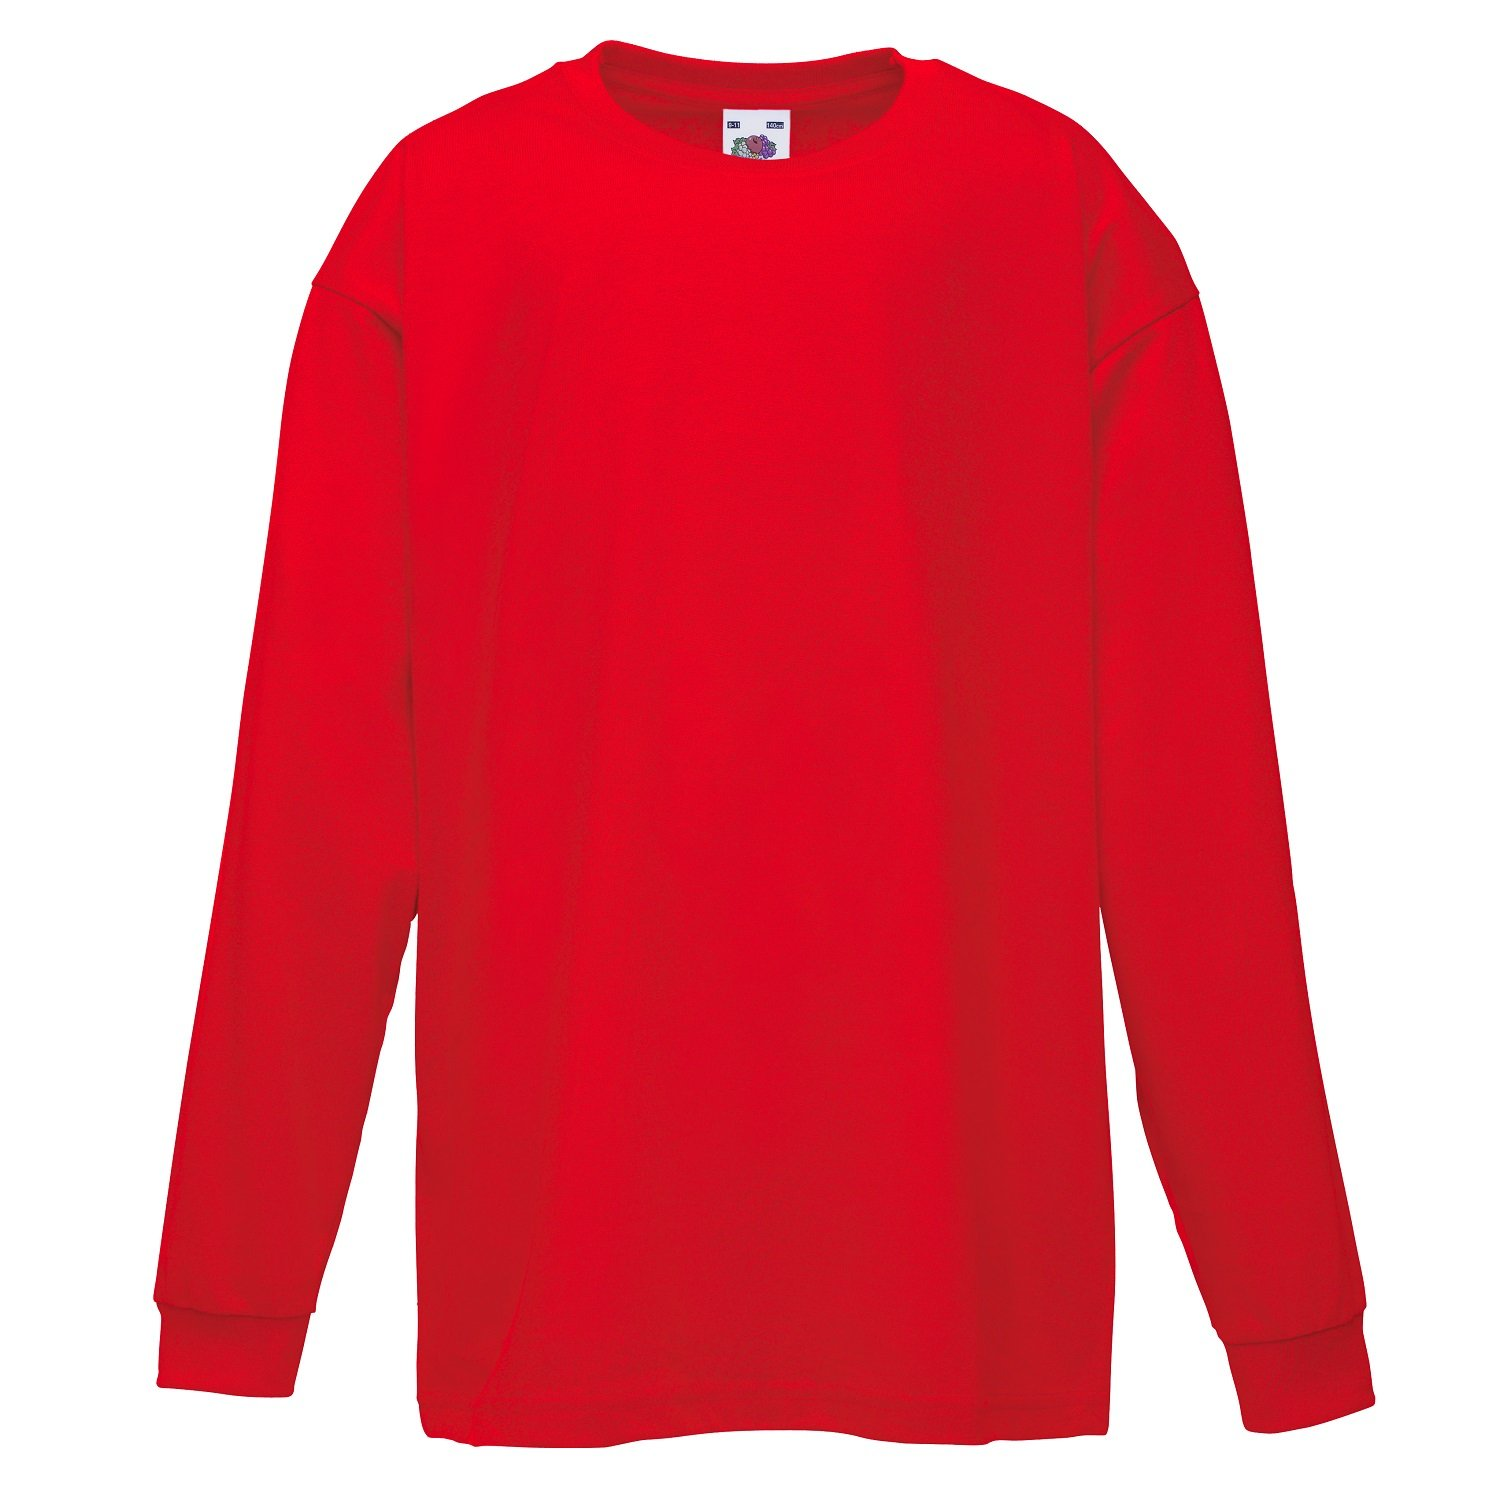 Women's Red Shirts. Showing 40 of results that match your query. Search Product Result. Product - Womens Referee Shirt Comfortable V-Neck Ref Shirt for Waitresses, Refs, Costumes Product - Valentines We're a Purrrfect Pair Navy Womens Long Sleeve T-Shirt. Product Image. Price $ 95 - $ Product Title.